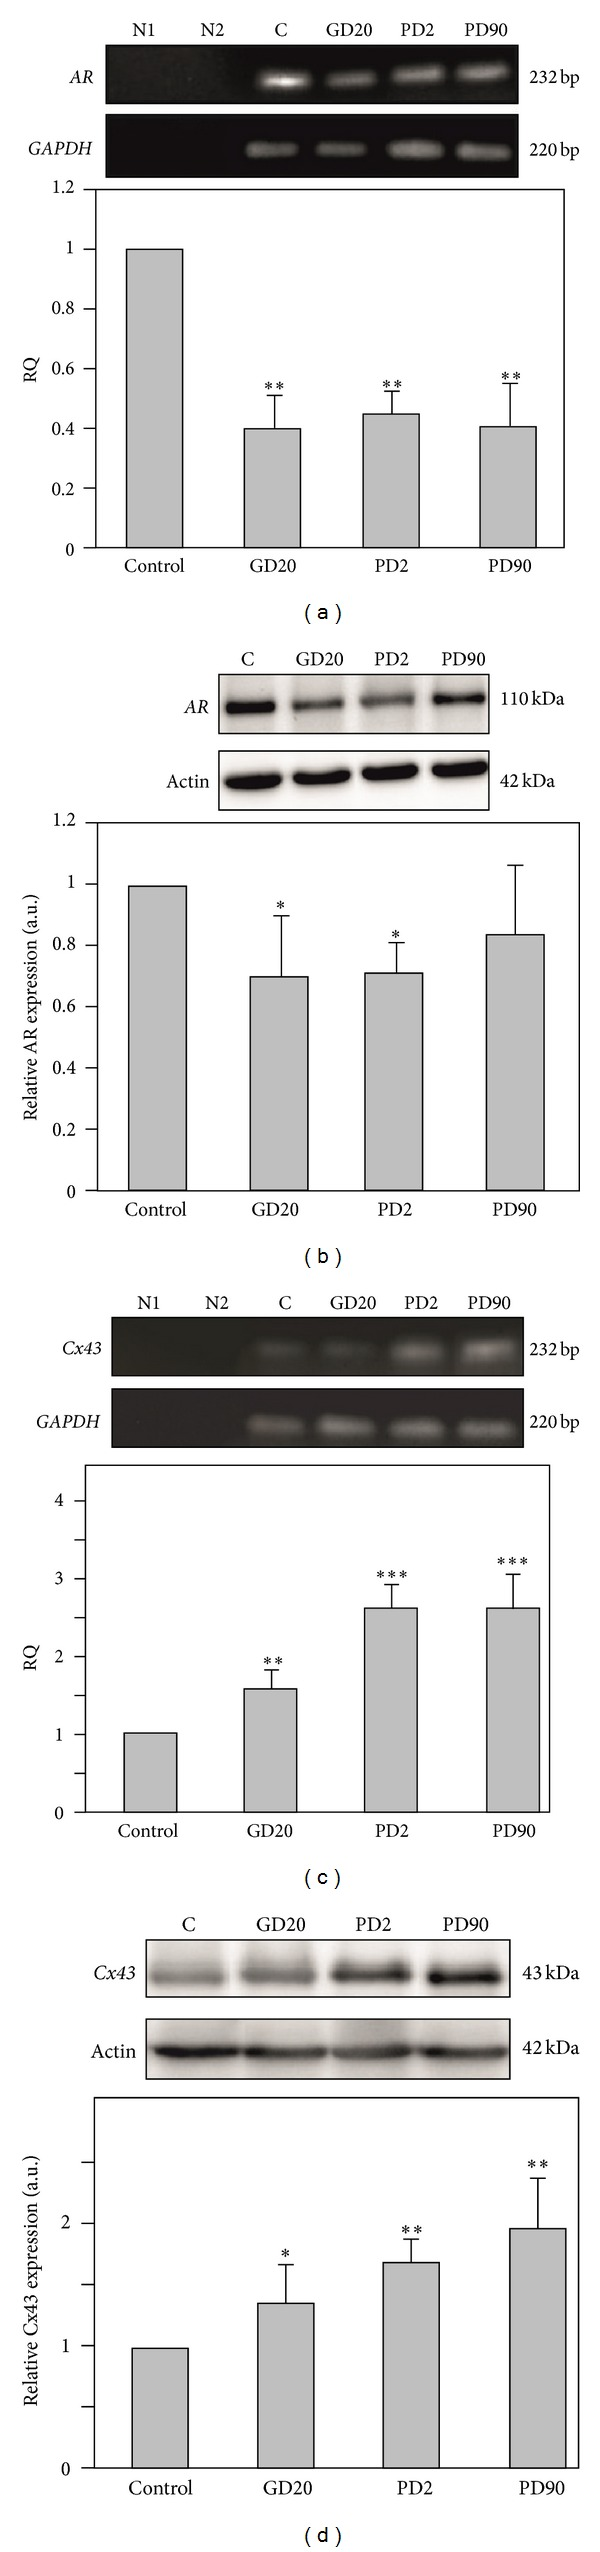 Androgen receptor and Cx43 mRNAs and protein expression in prostates of control and flutamide-exposed boars. ((a), (c)) Androgen receptor and Cx43 mRNAs expression. As an intrinsic control, the GAPDH mRNA level was measured in the samples. Representative gels electrophoresis of qualitative expression of AR (a), Cx43 (c) and GAPDH mRNAs. Line N1—negative control without cDNA template, line N2—negative control without reverse transcribed RNA. Relative expression of mRNA for AR (a) and Cx43 (c) determined using real-time RT-PCR analysis. Relative quantification (RQ) is expressed as means ± SD. Significant differences from control values are denoted as * P